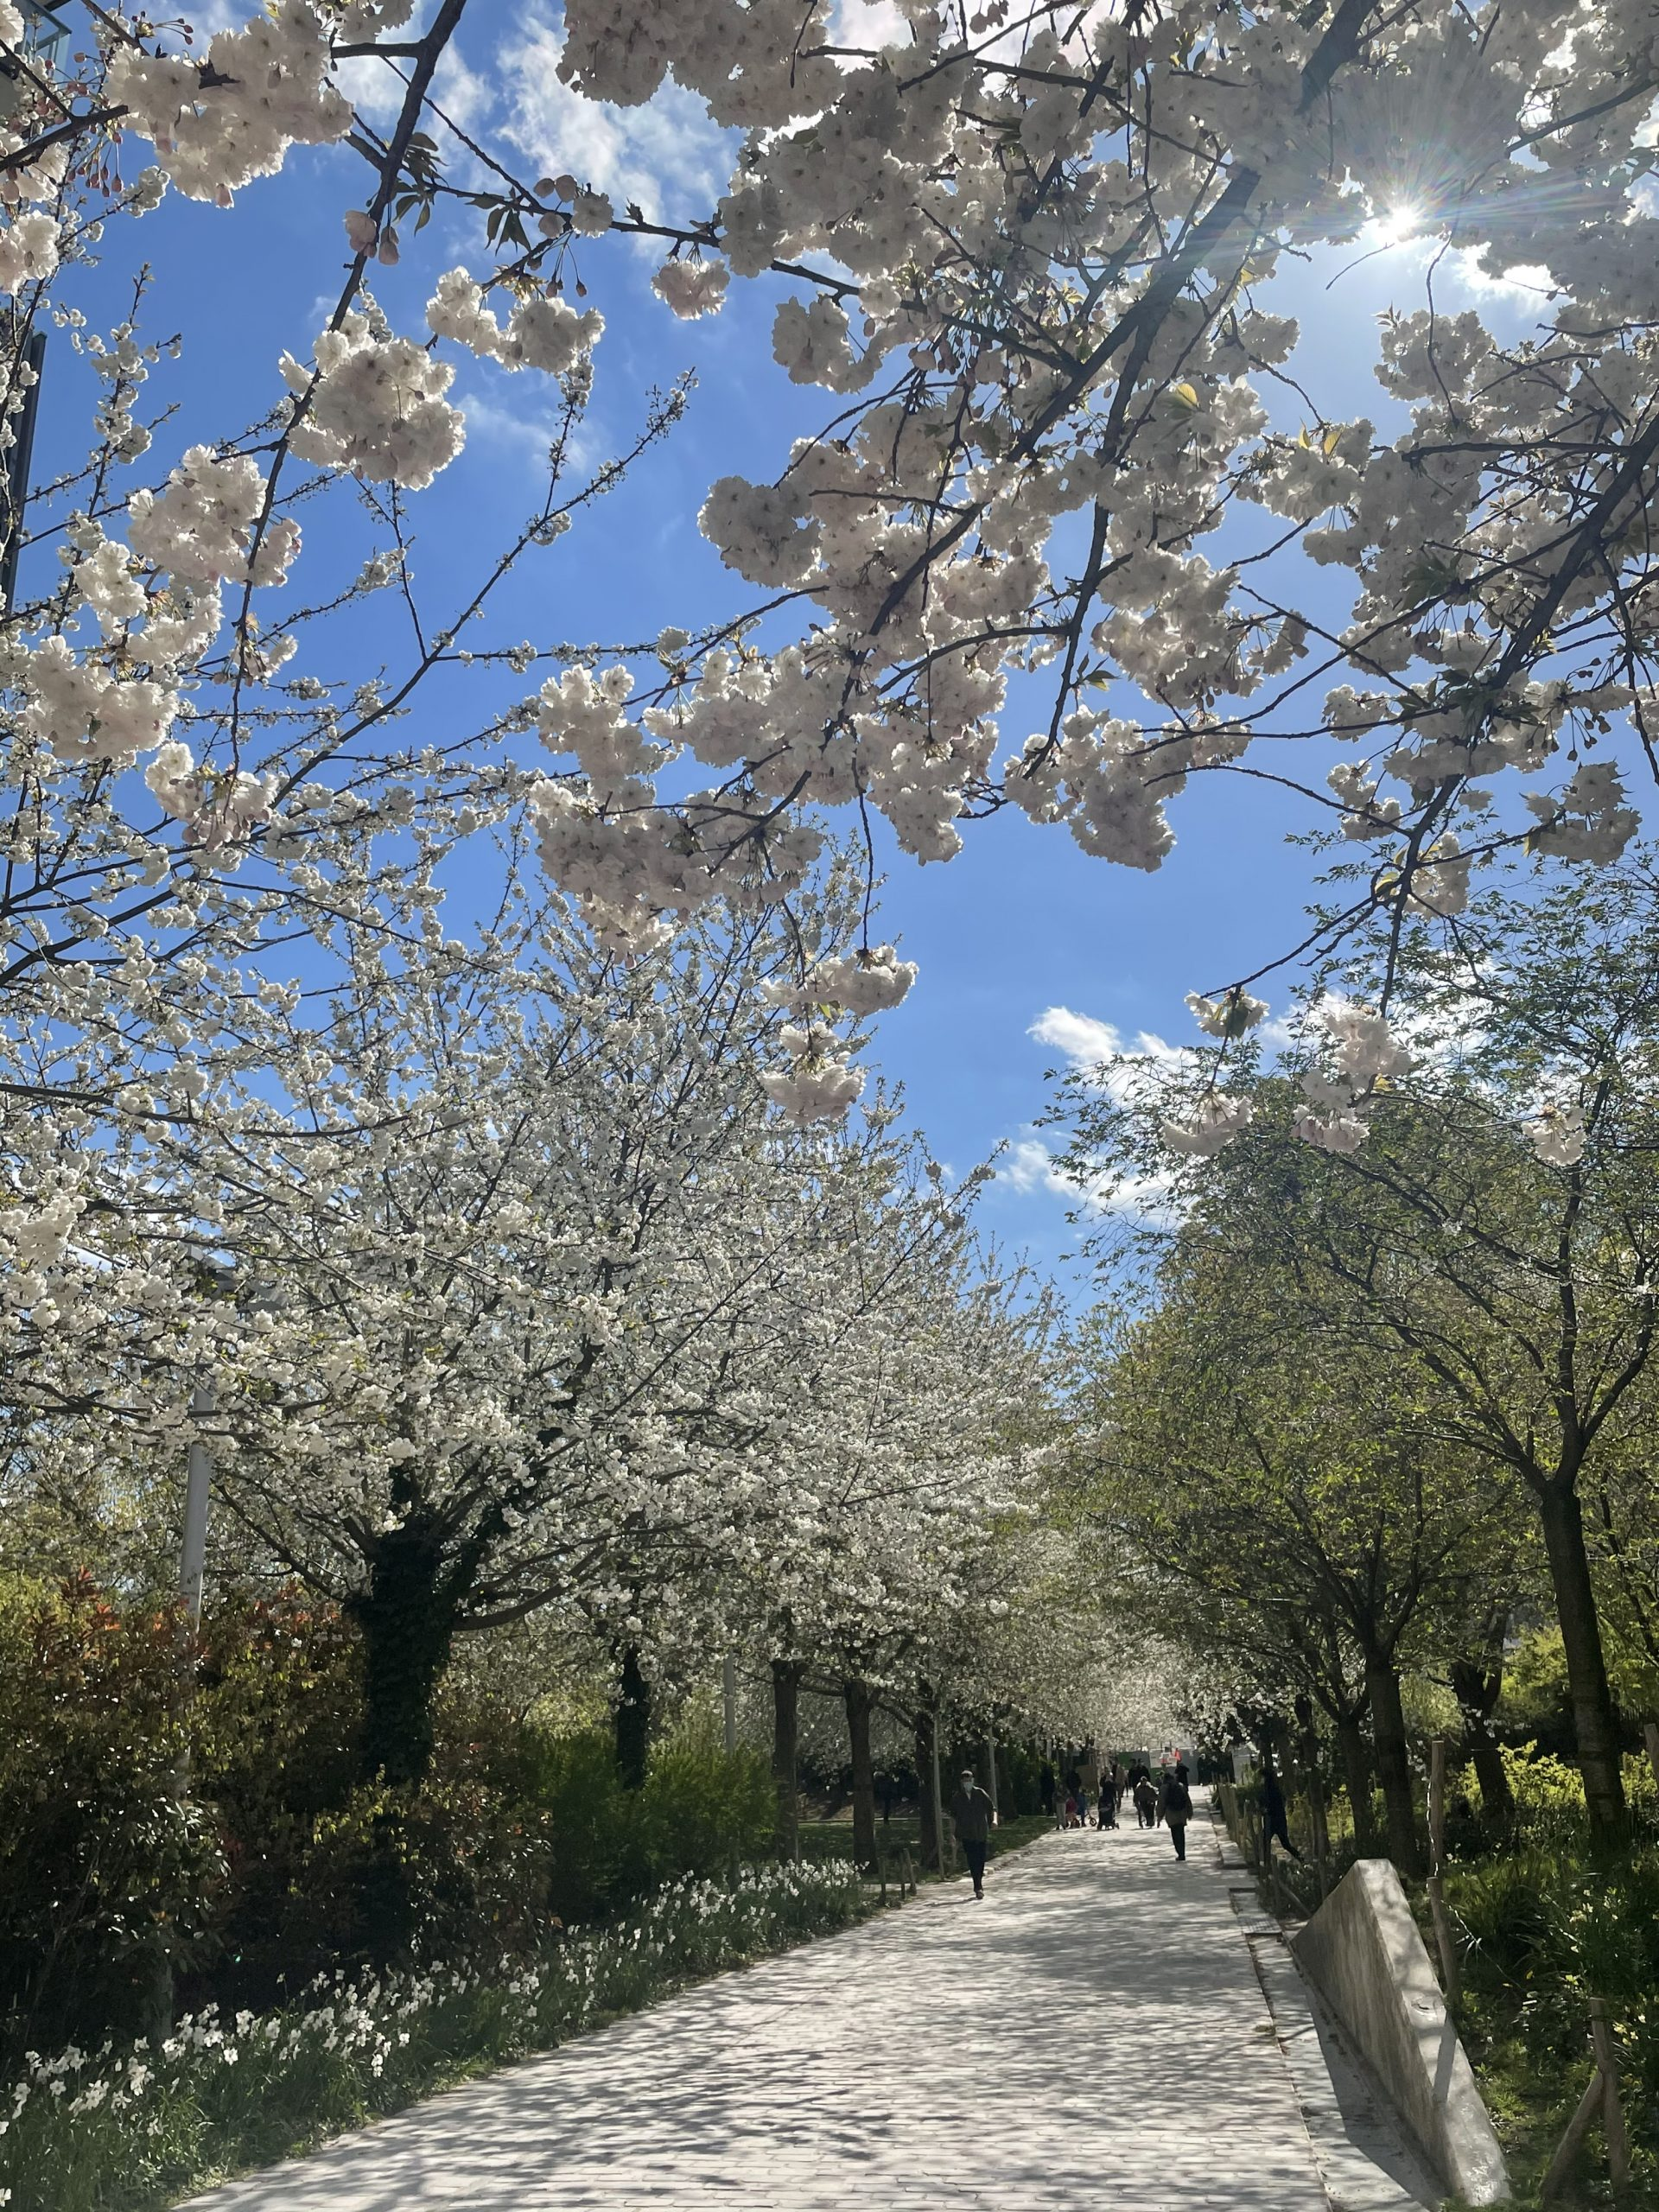 walkway lined with white flowering trees outside during daytime